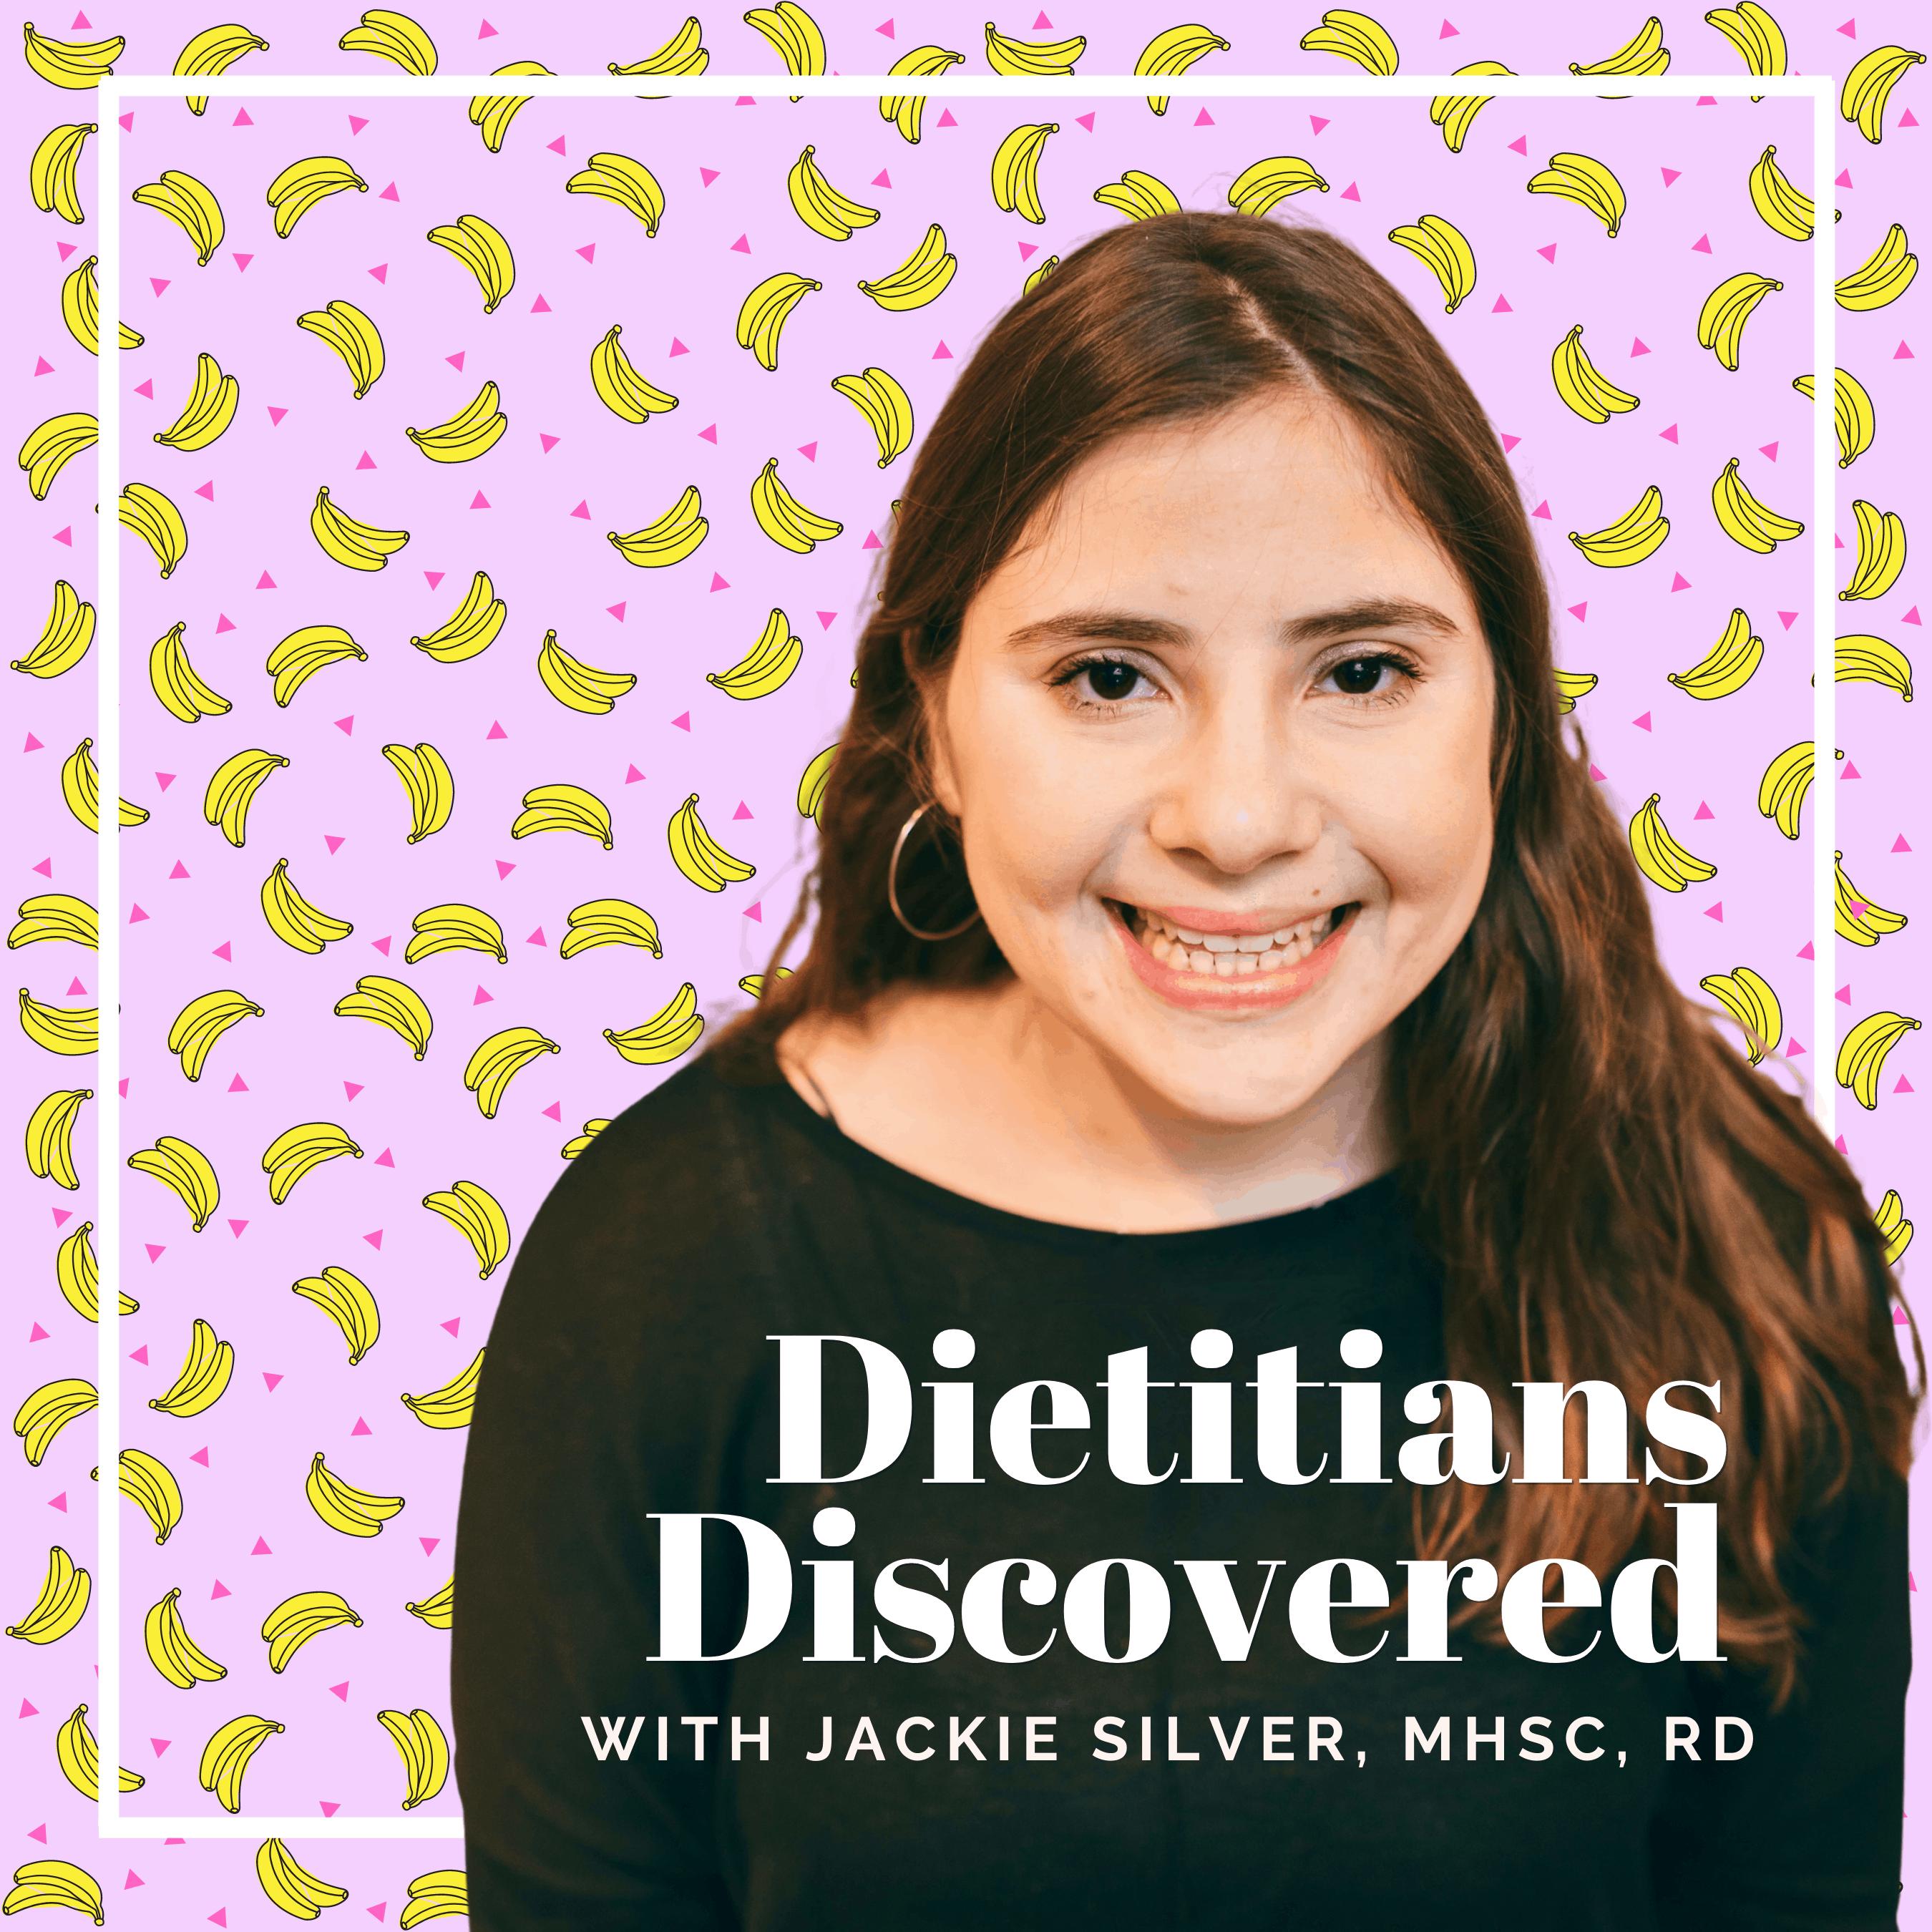 Jackie Silver on Dietitians Discovered with pink banana background.